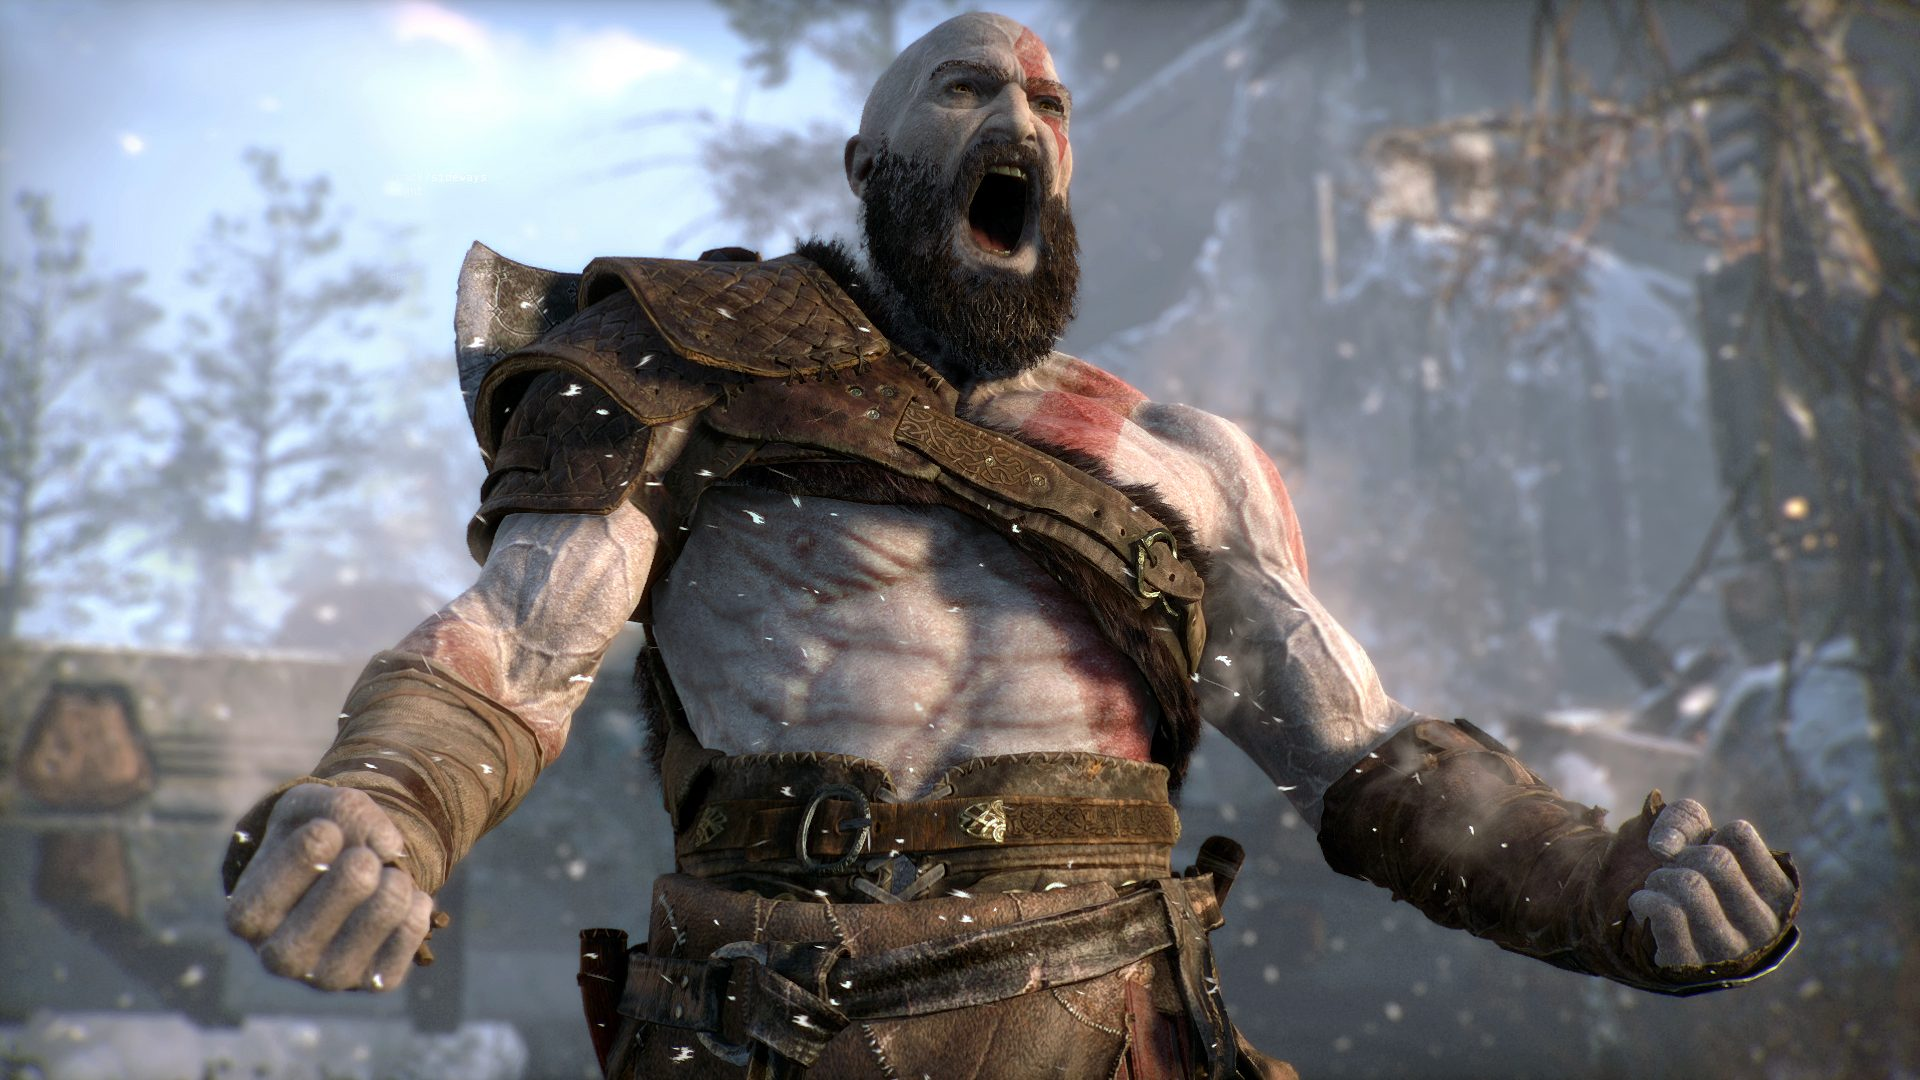 God of War correrá a 60FPS en PS5. Función de transferencia de datos confirmada.